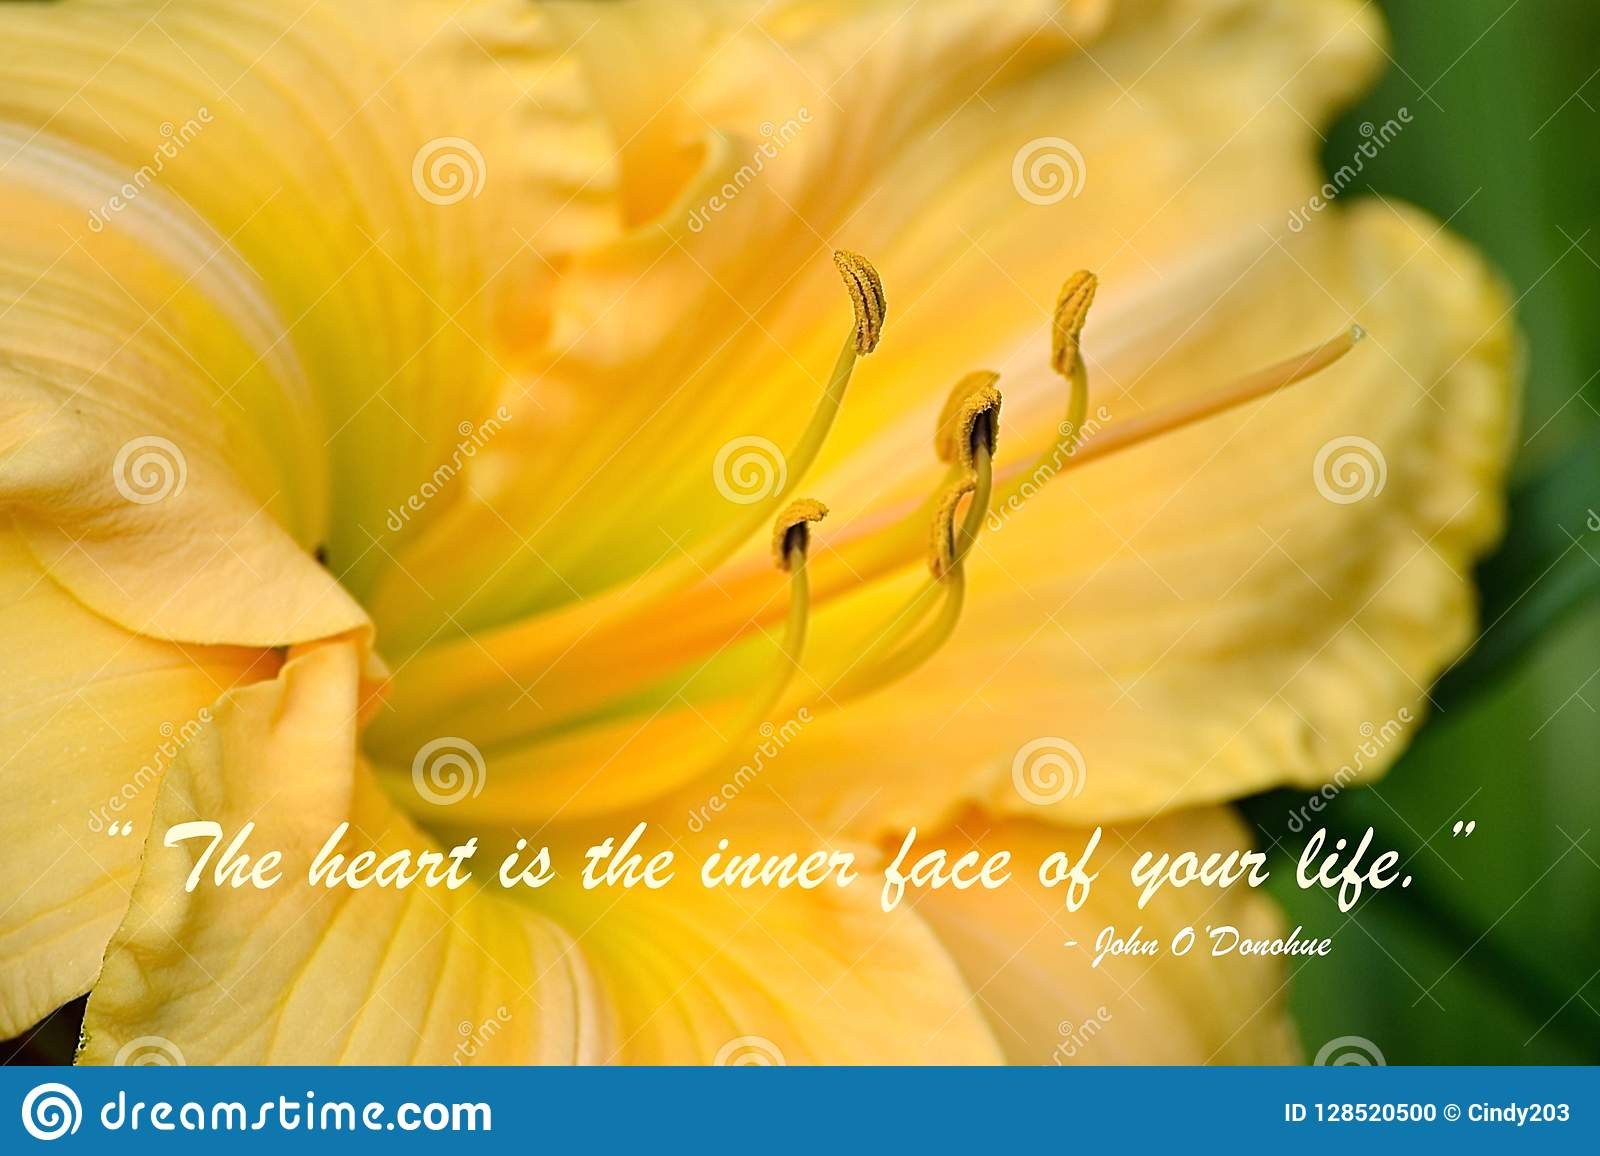 Inspirational Quote On A Beautiful Yellow Lily Stock Photo